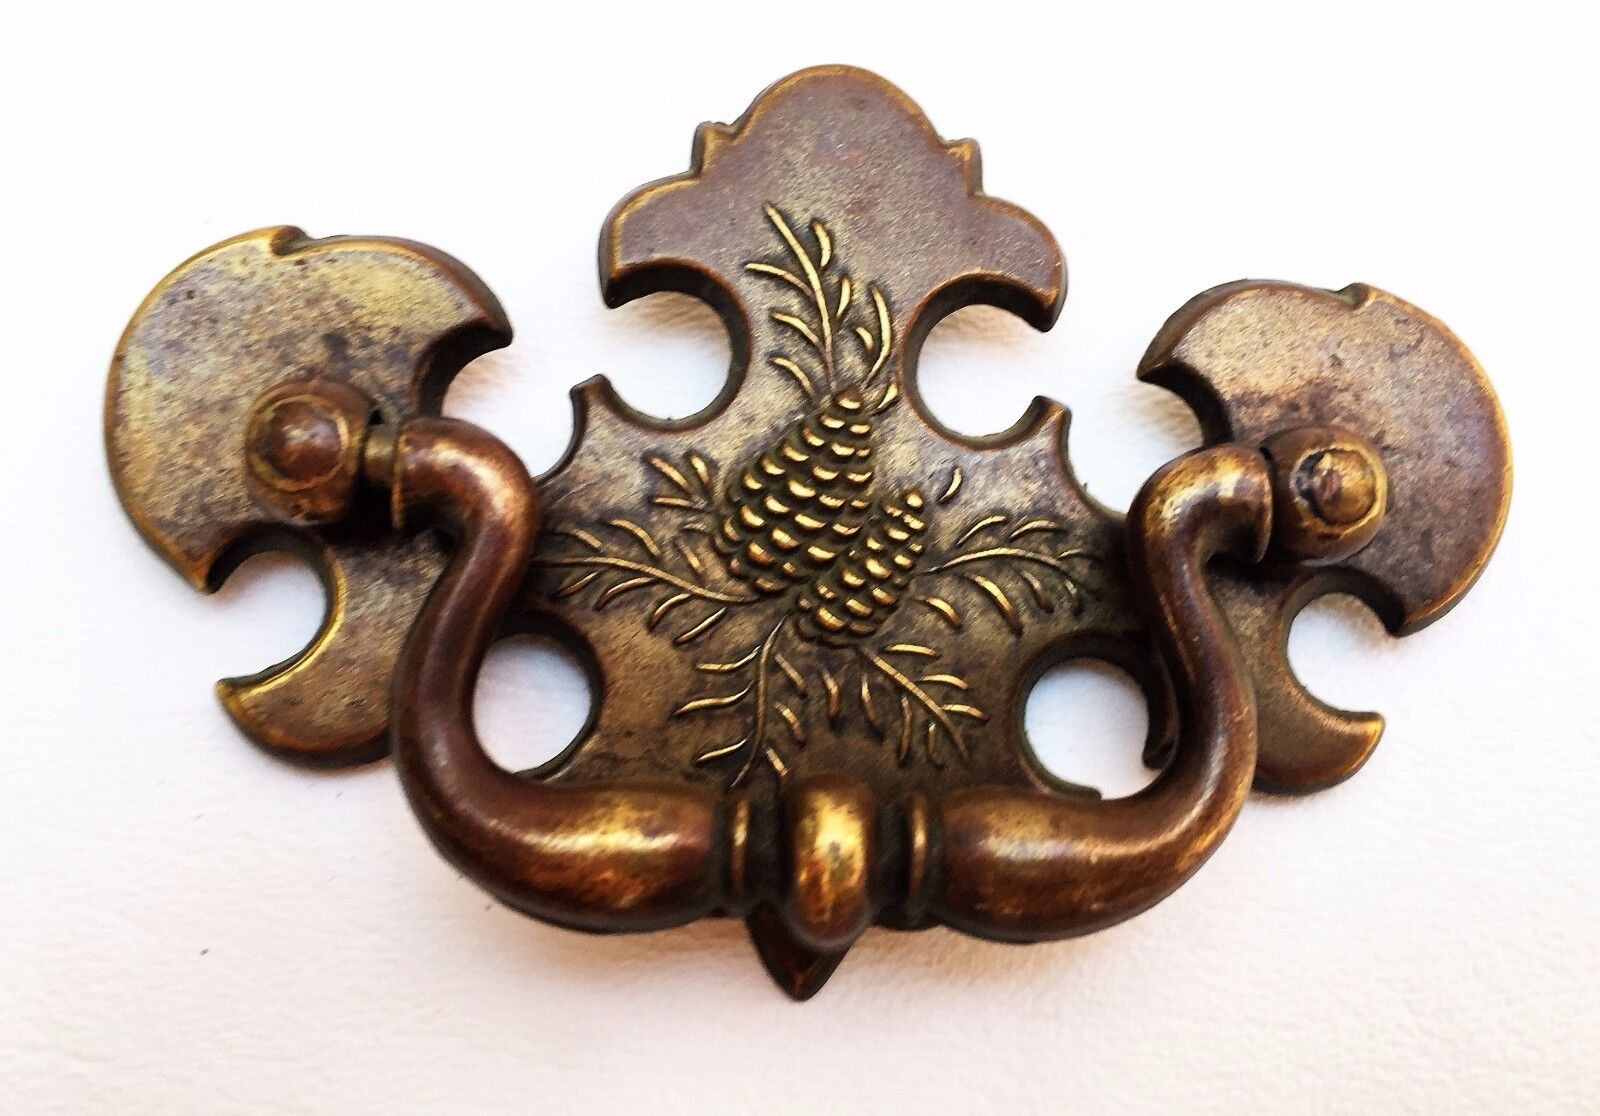 Brass Antique Hardware Vintage Chippendale Drawer Pull 2 1/2 center Rustic Cabin